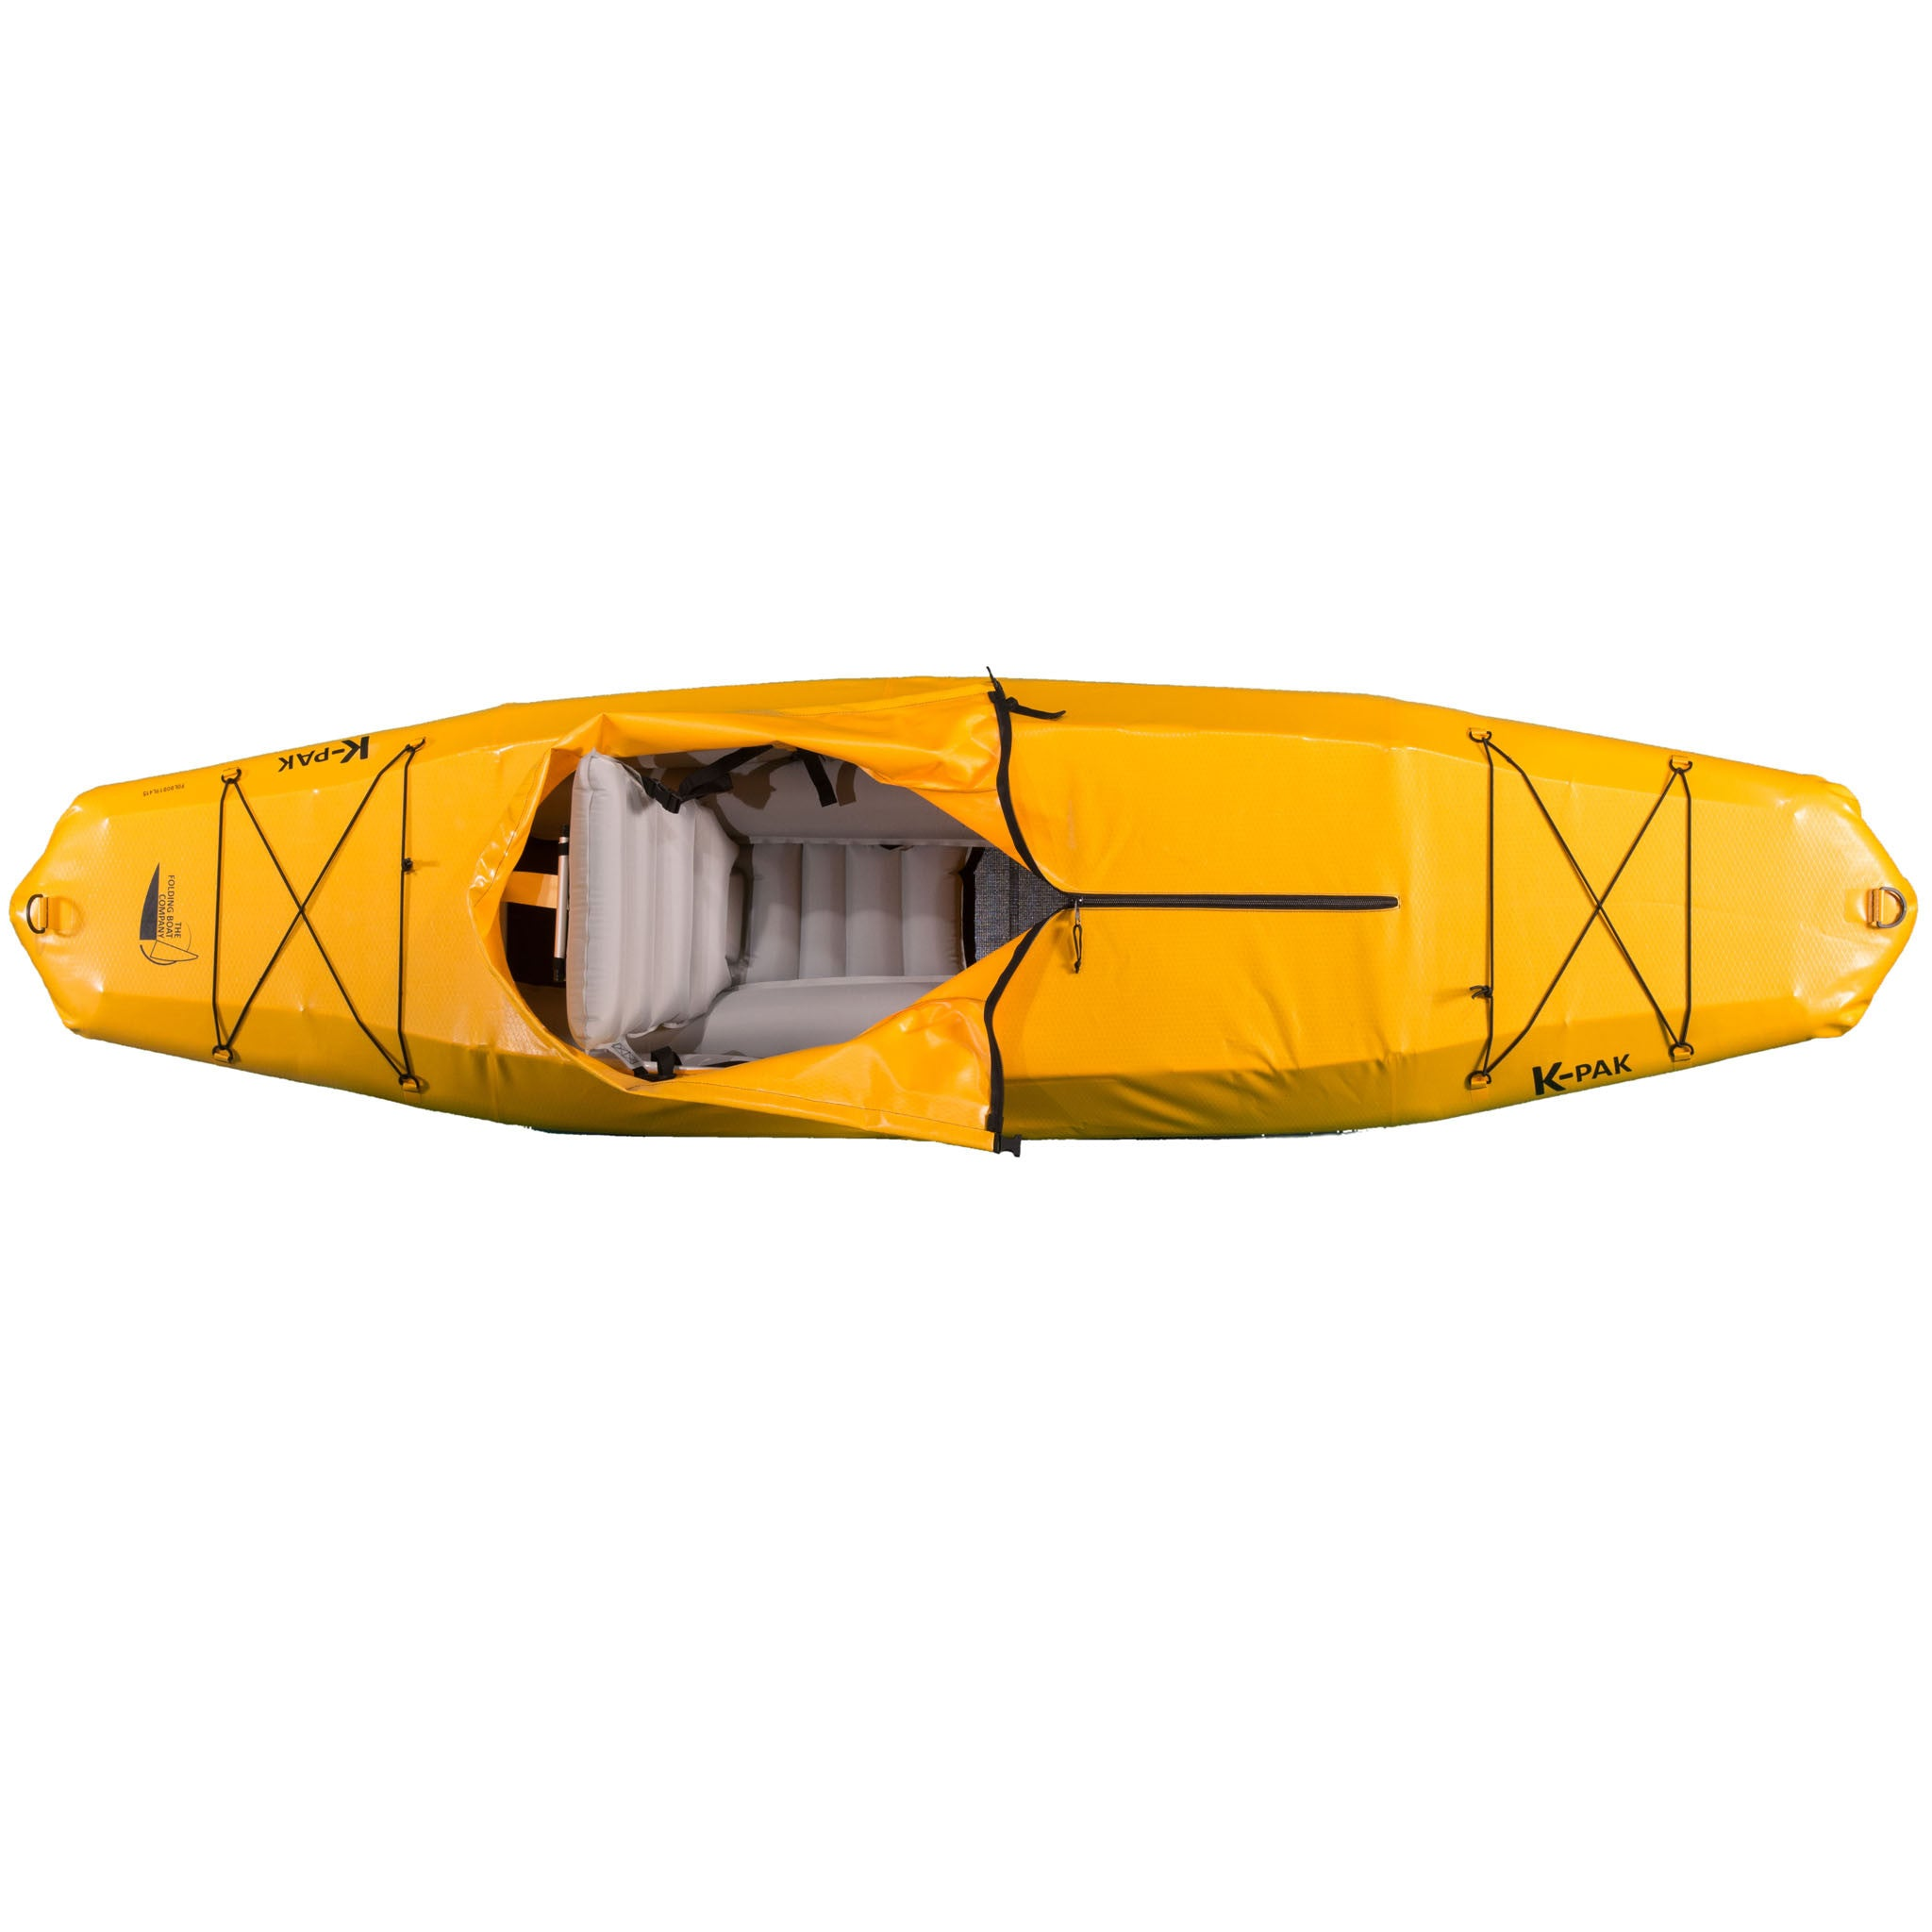 K-PAK foldable kayak in yellow from overhead sold by Wee Boats